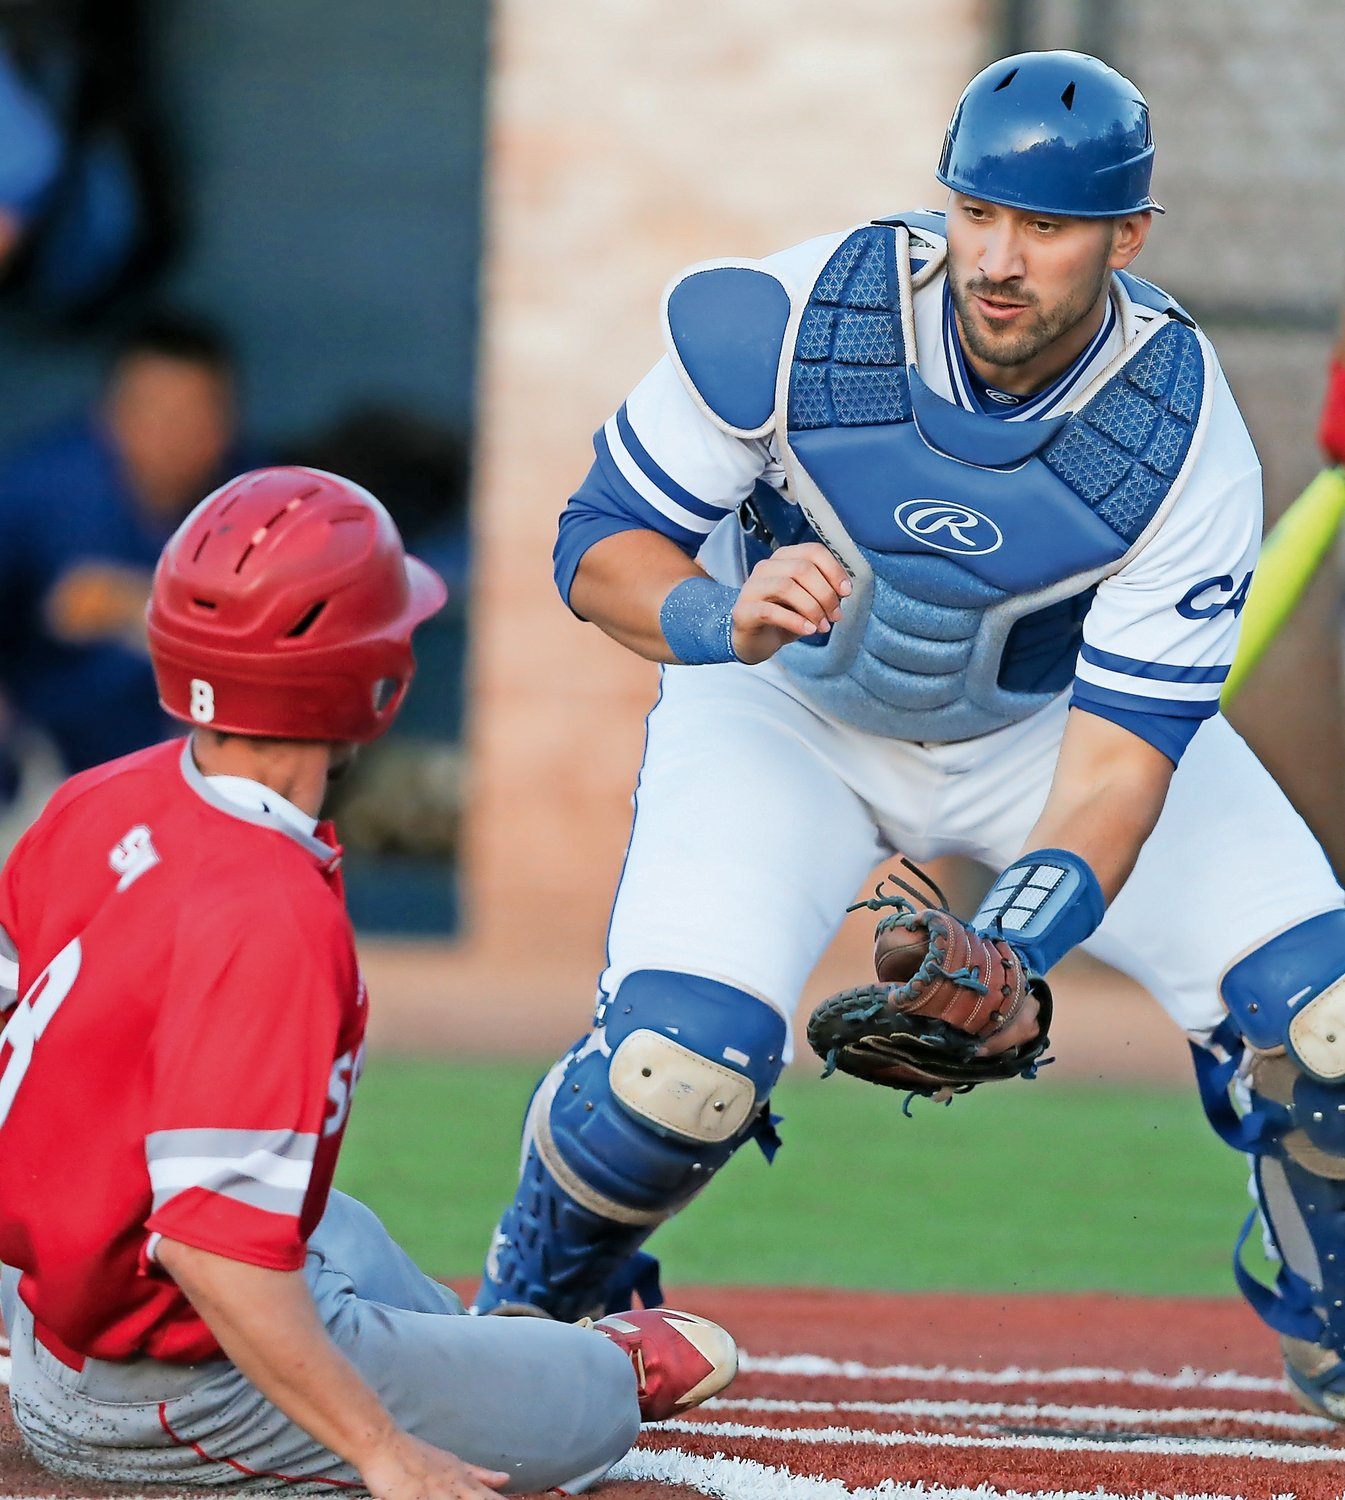 Valley Stream Central and Hofstra University grad Vito Friscia was selected by the Philadelphia Phillies in the MLB Draft on June 5.